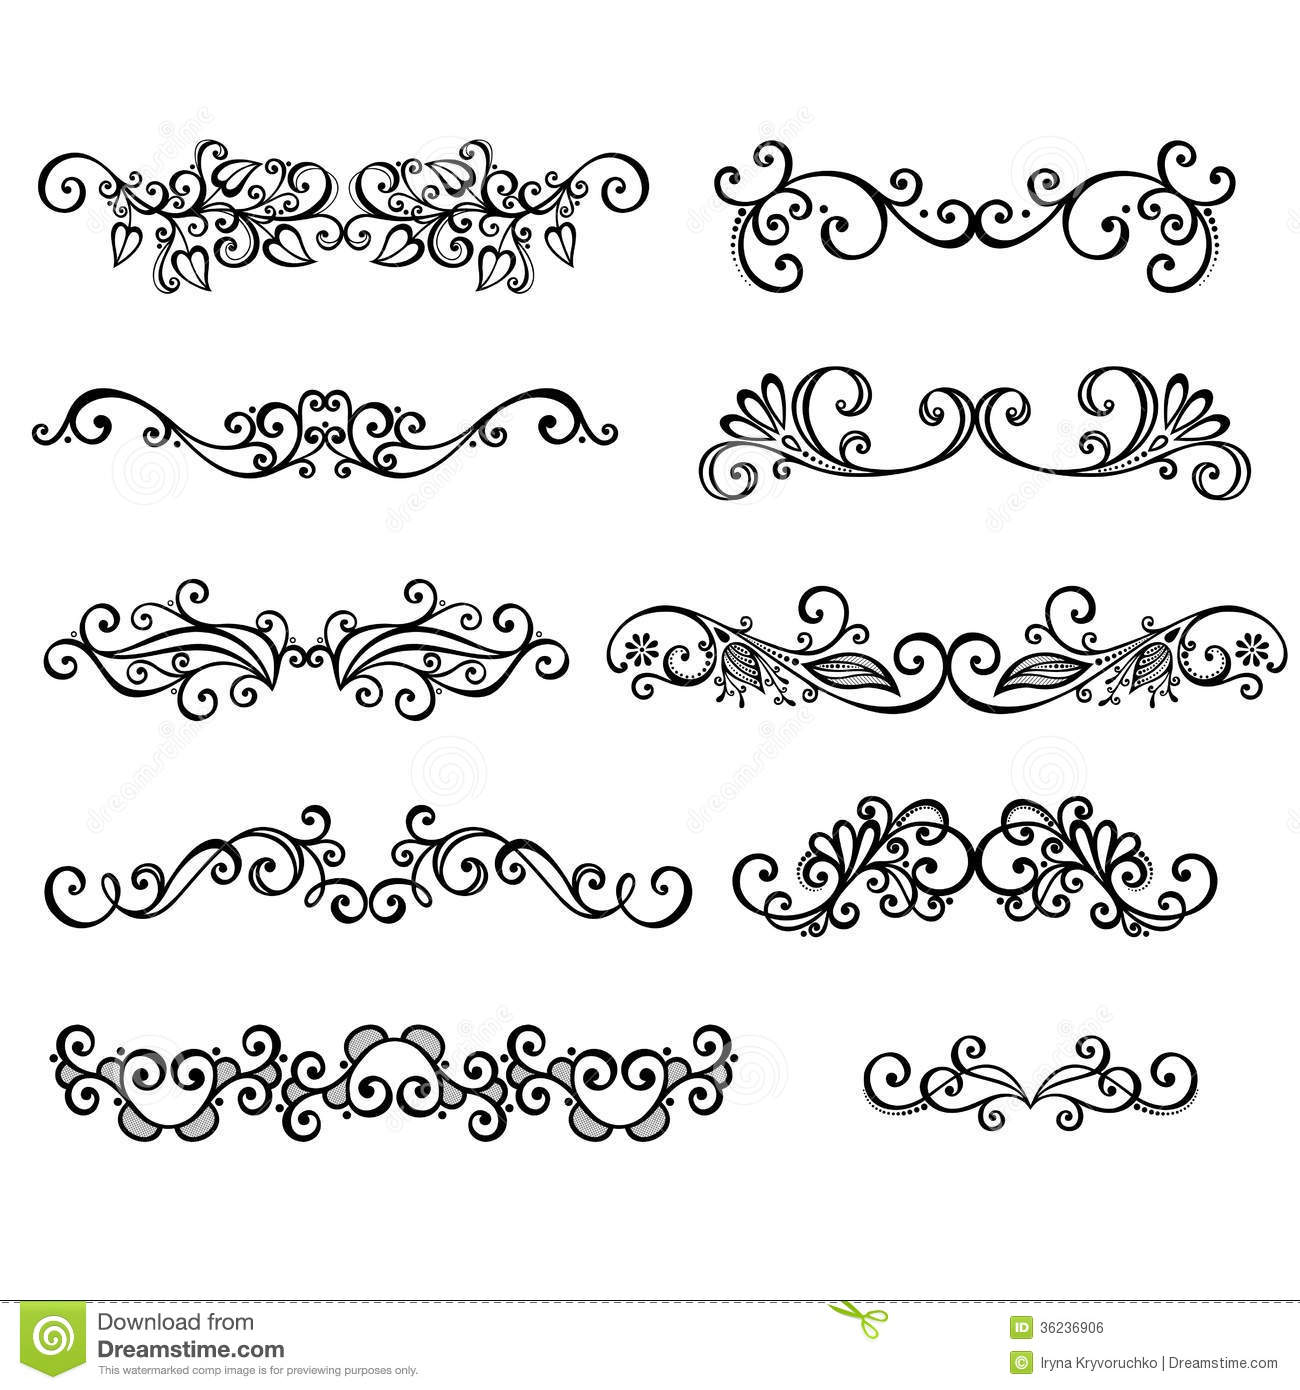 Calligraphic borders anctor d page decoration stock photo for Decoration page